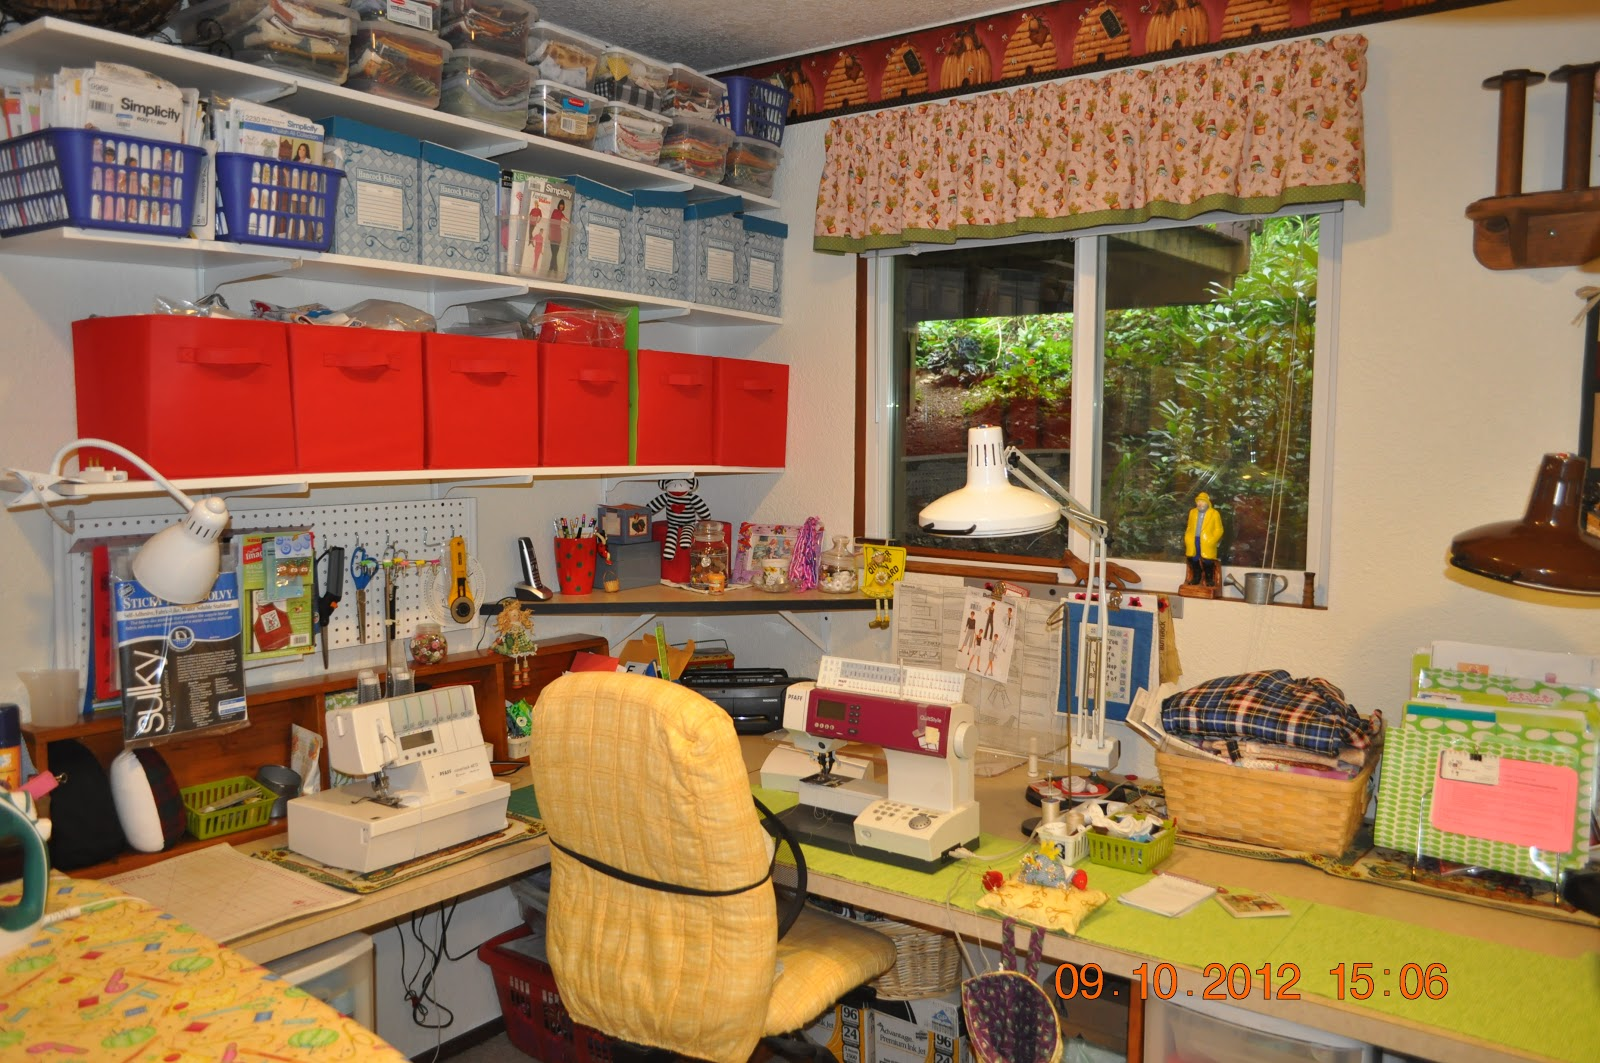 LindaLouQuilts: Sewing Room and Quilting Studio